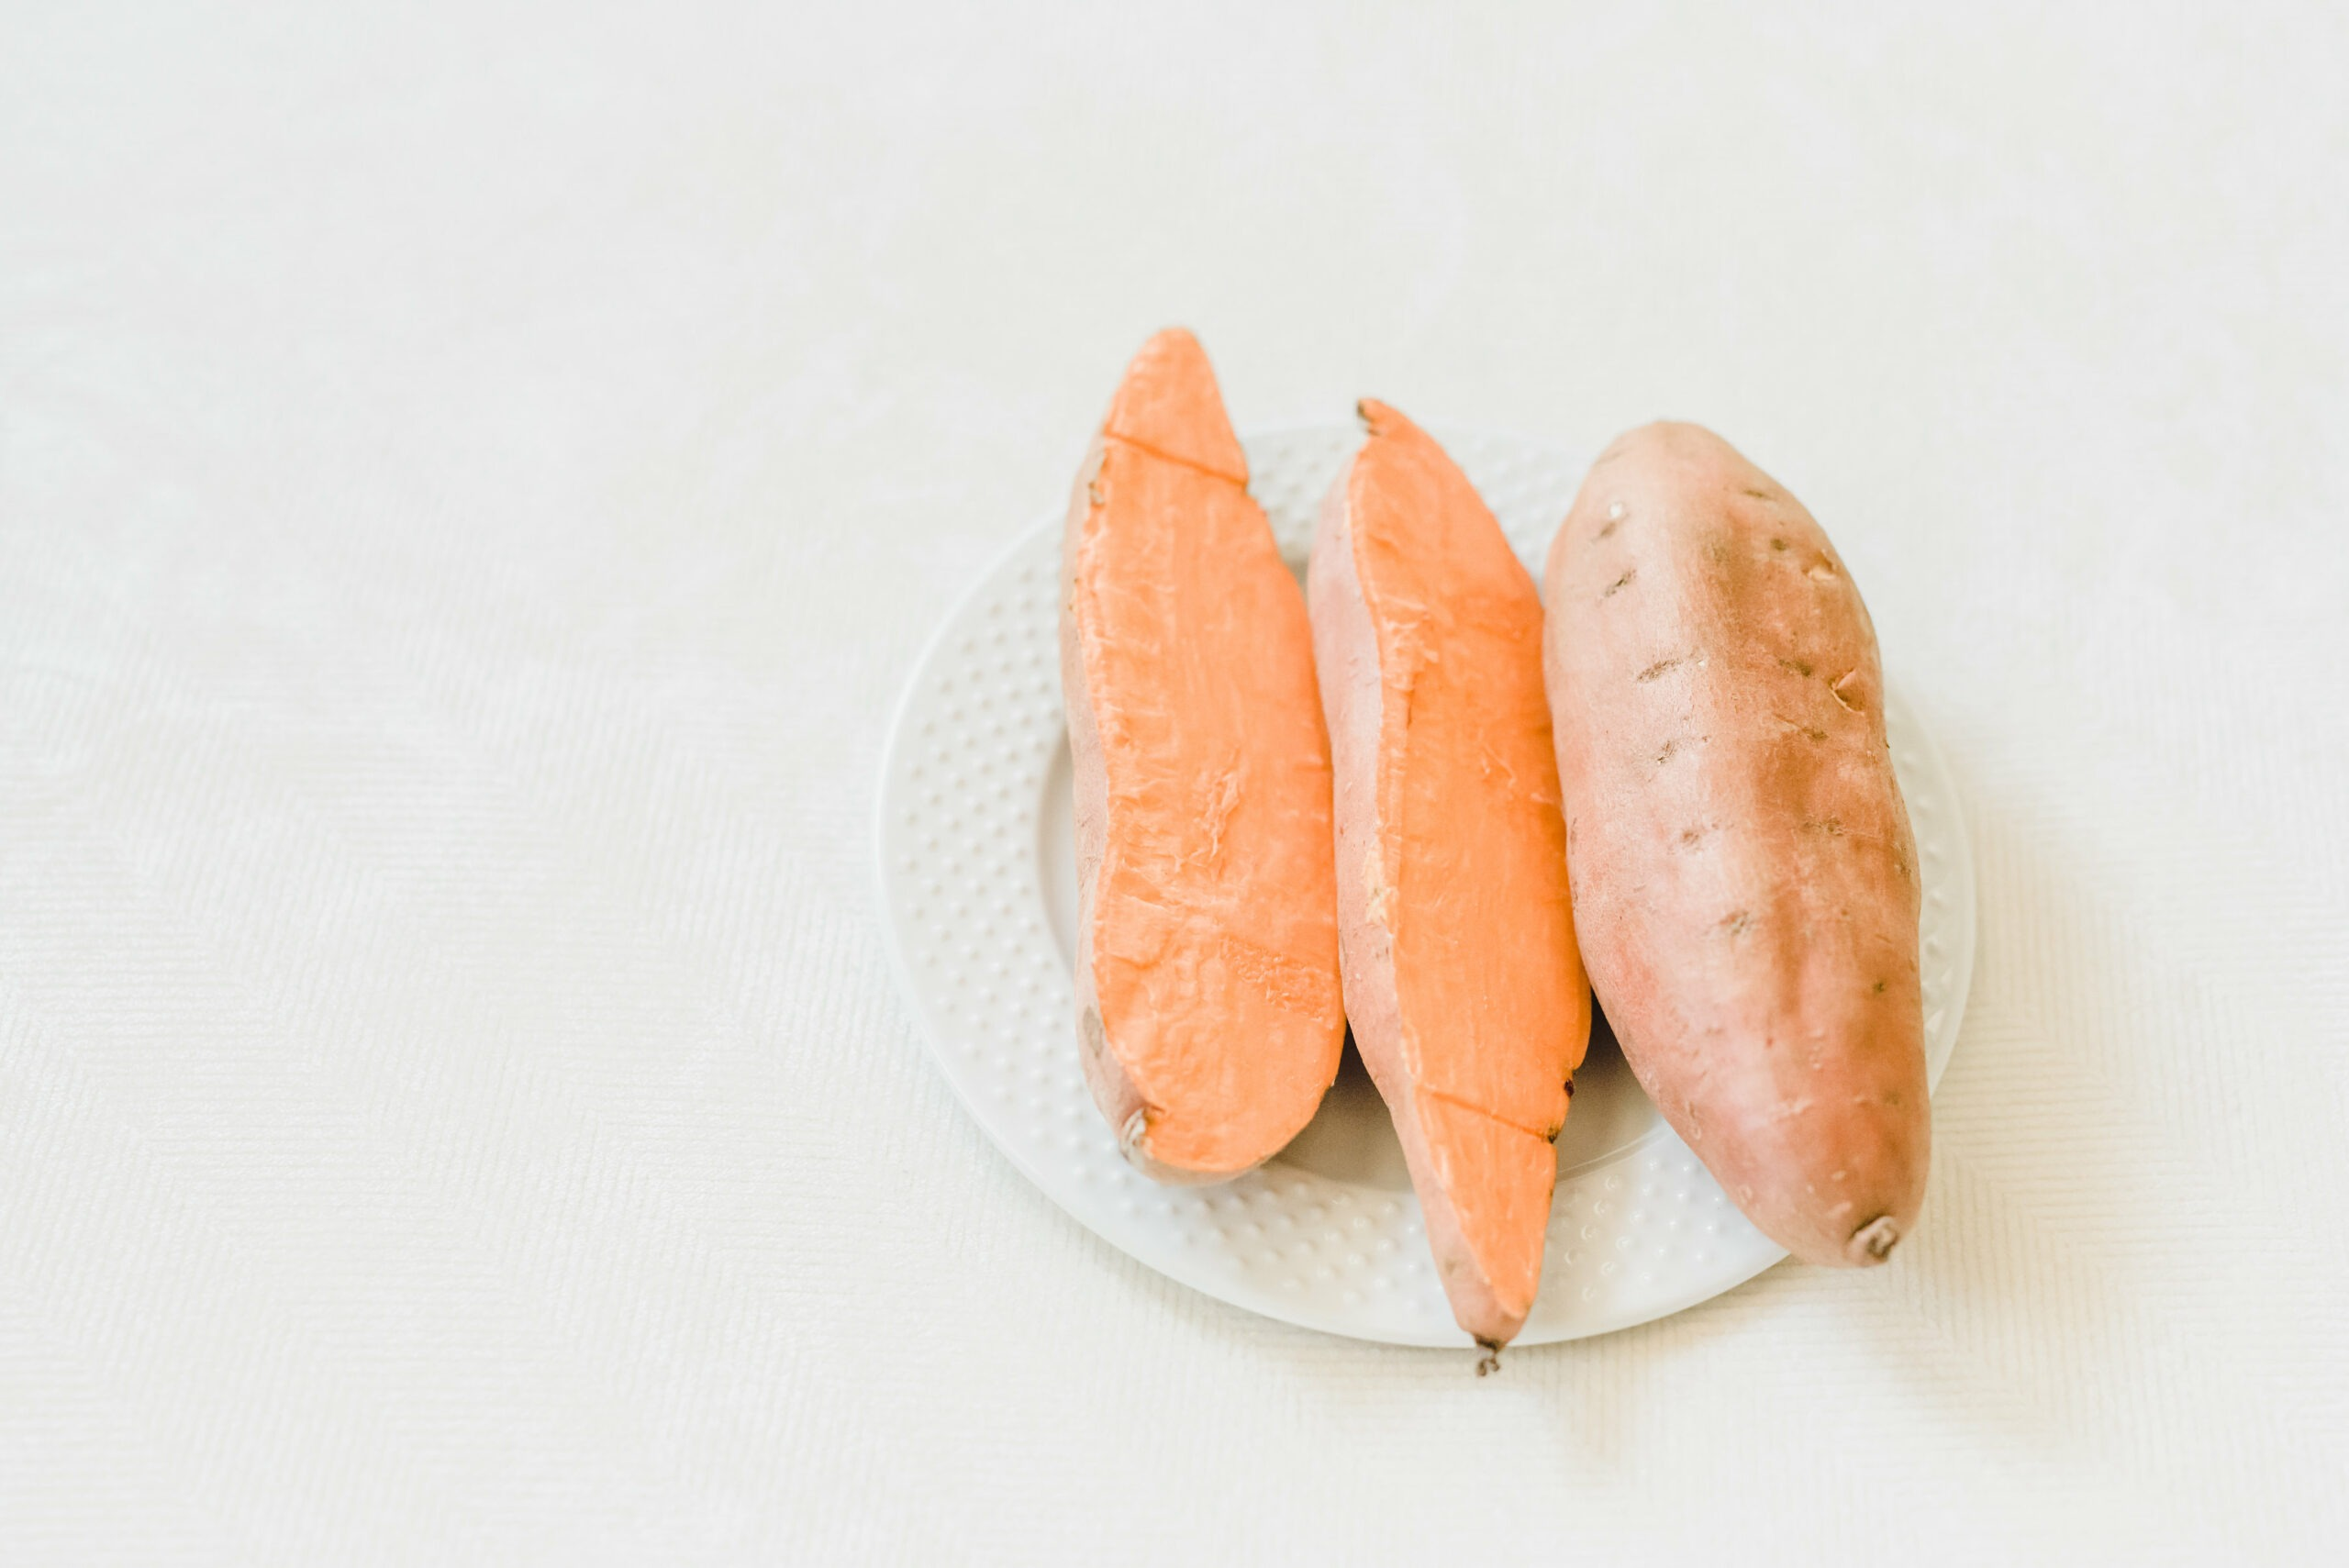 Sweet potato beauty food for healthy skin